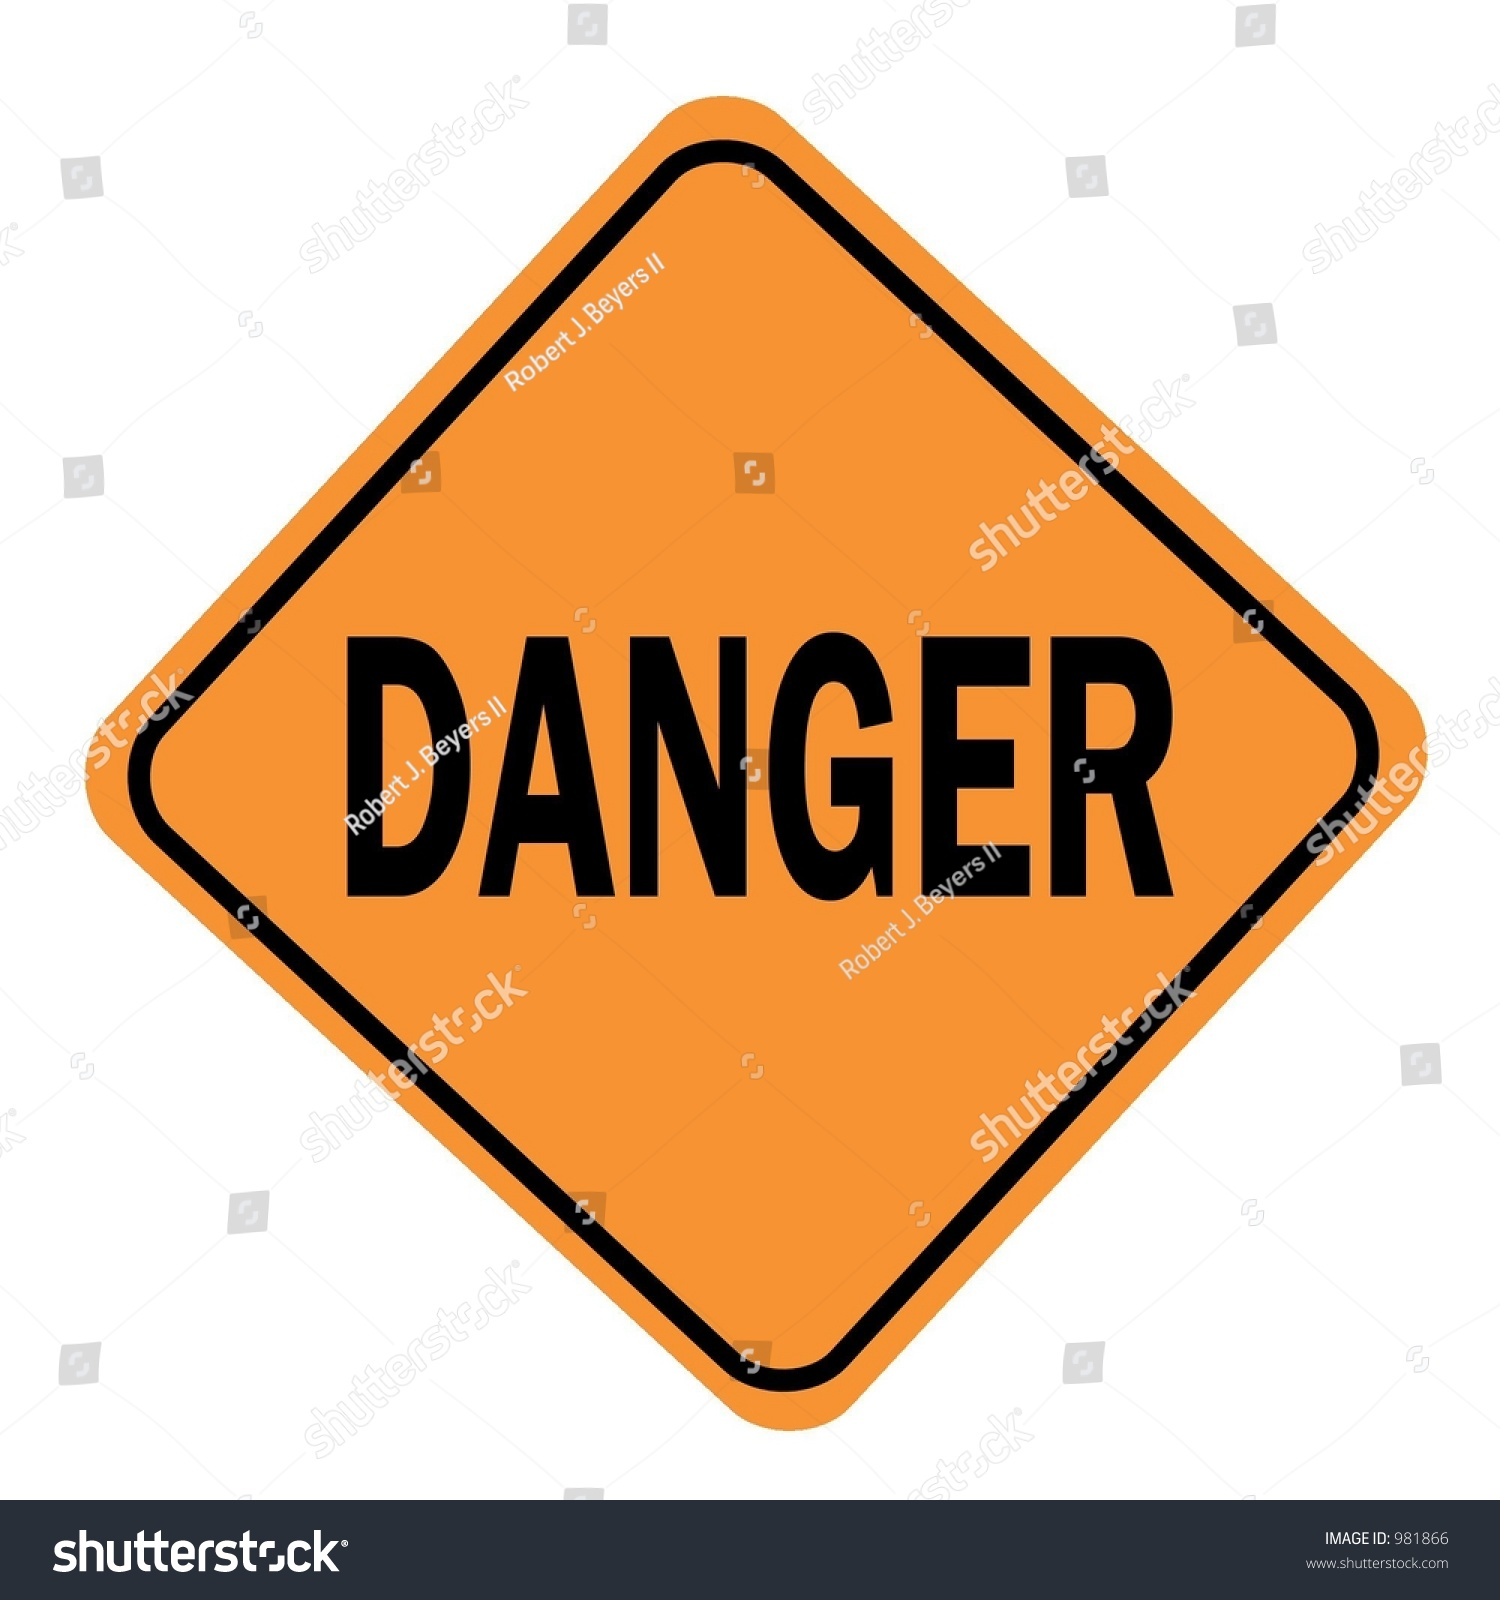 announce harm glossy icon photo dangerous board effect dissu baby dissuade danger diamond ahead car alert drive constraint advisory alarm caution